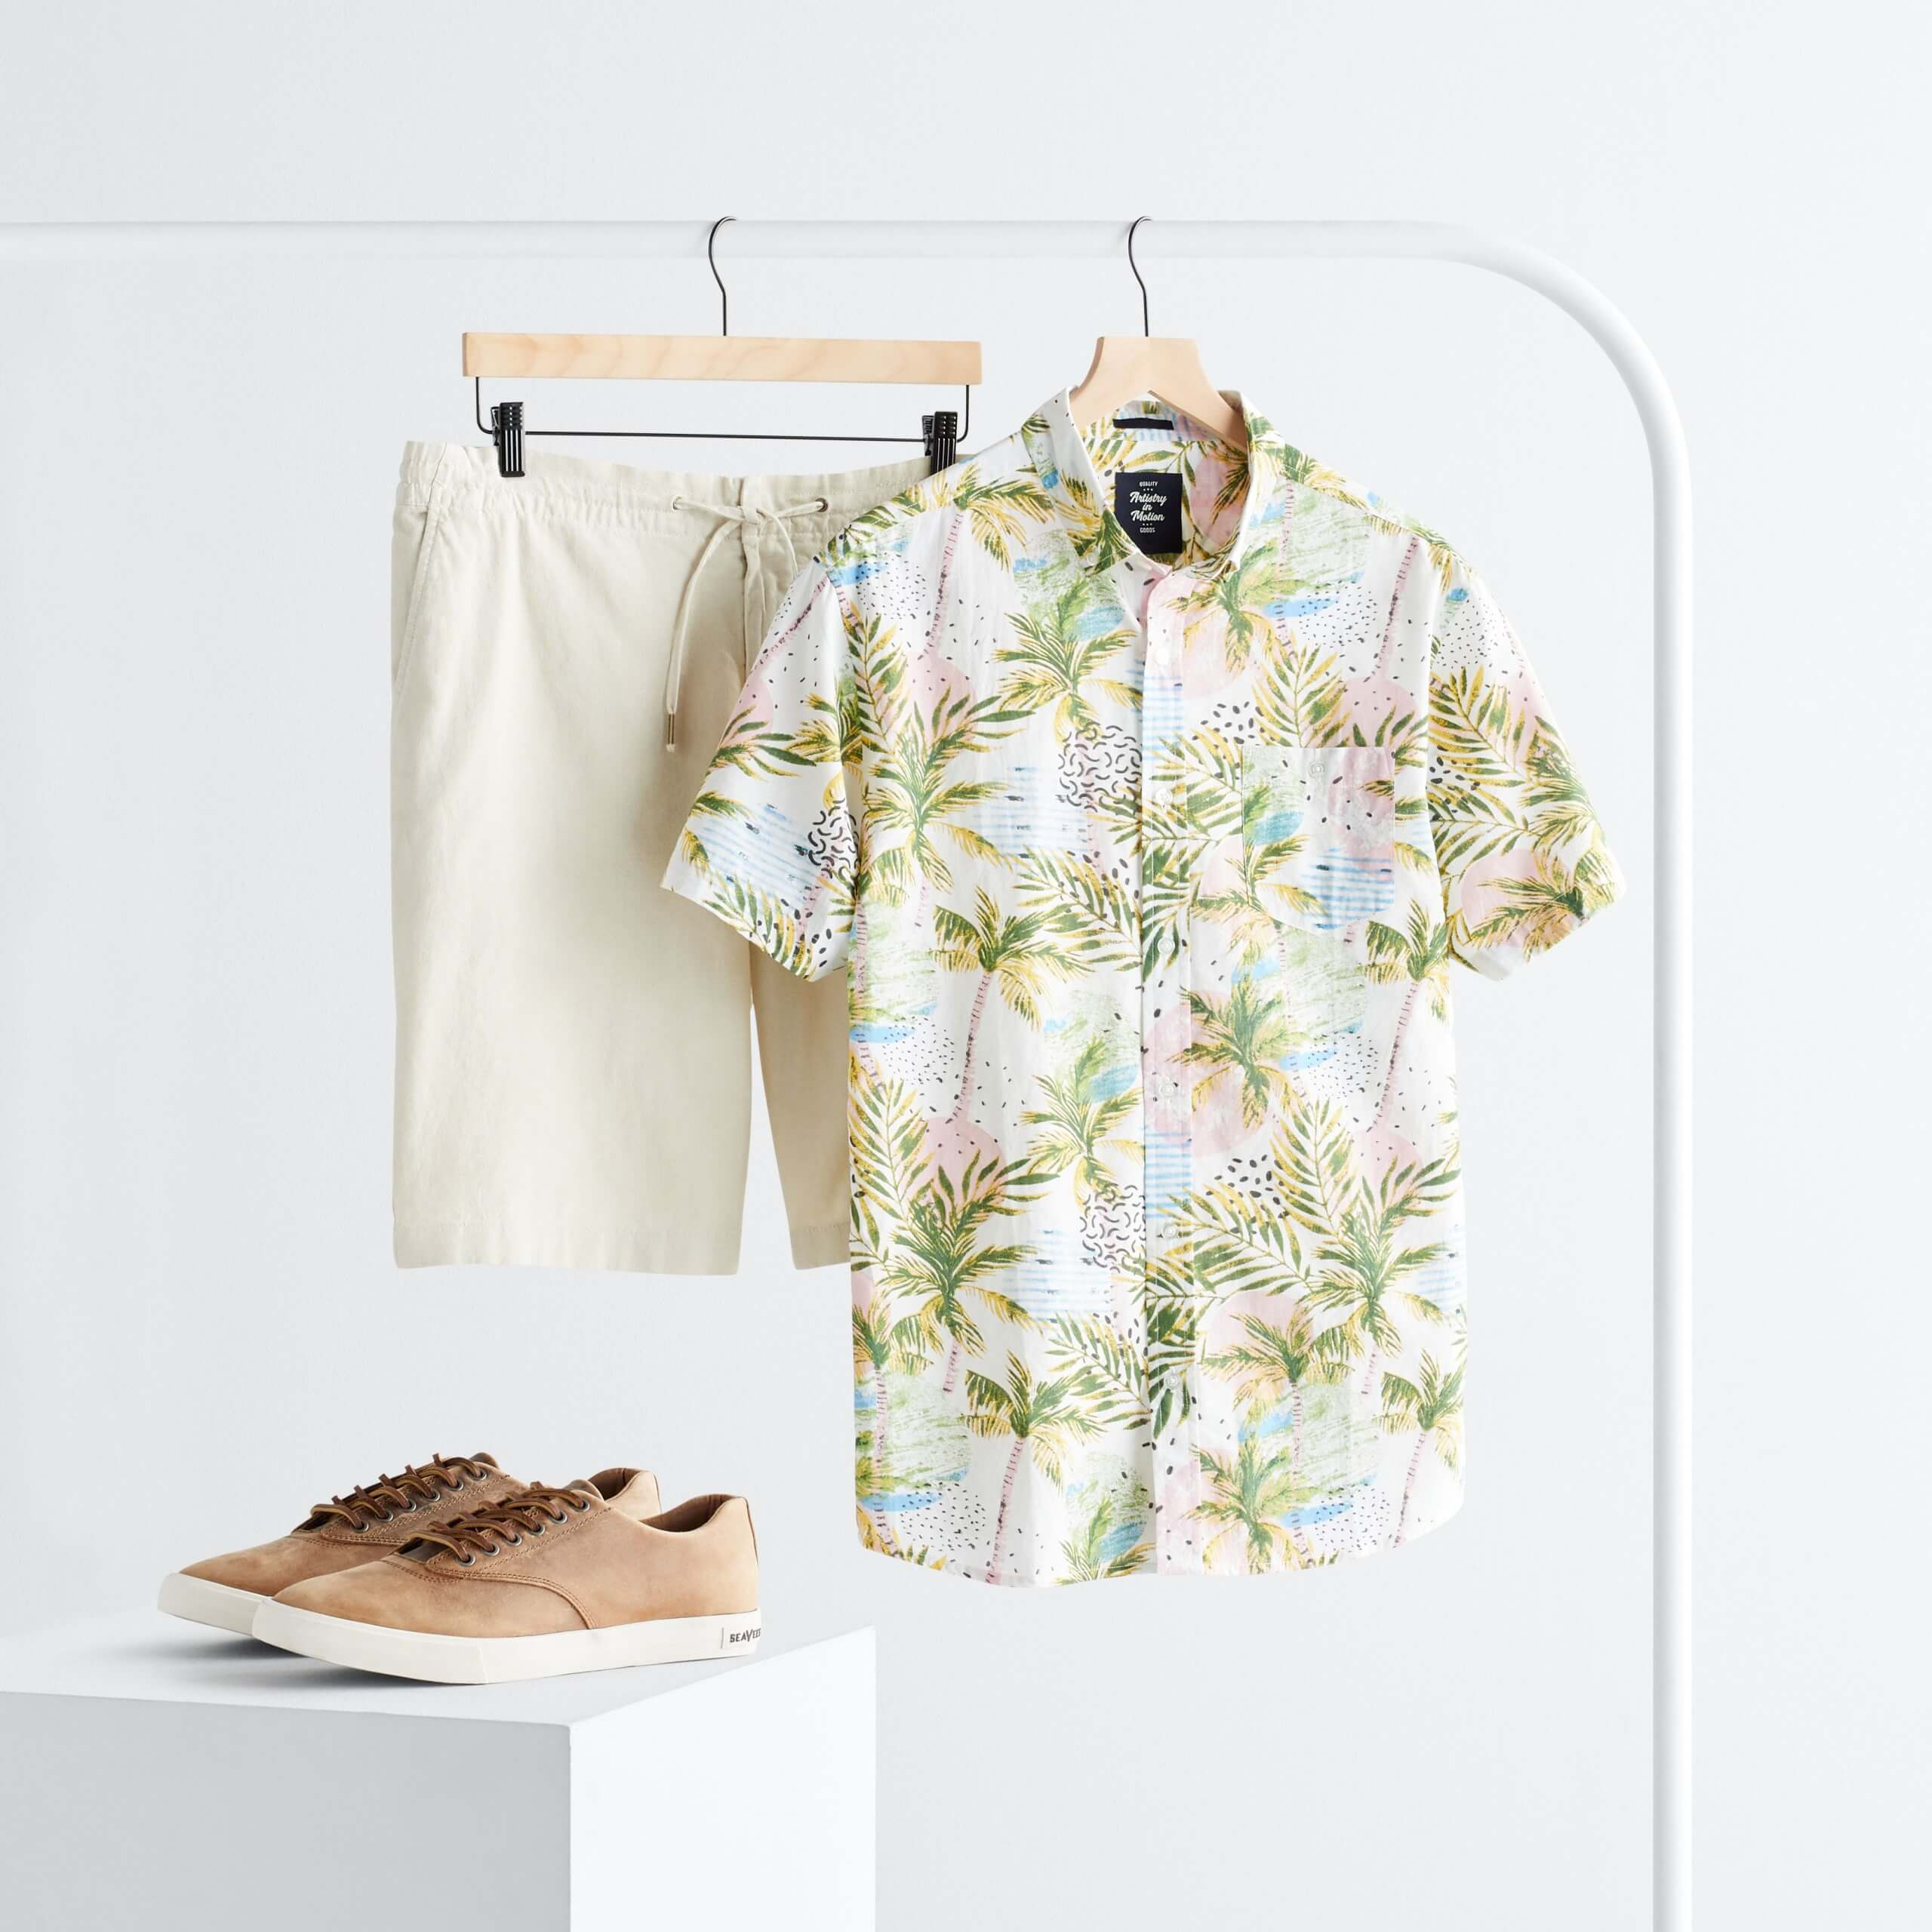 Stitch Fix Men's rack image with white, green and pink tropical print button-down short sleeve shirt and cream shorts hanging on white rack next to brown leather sneakers on white block.